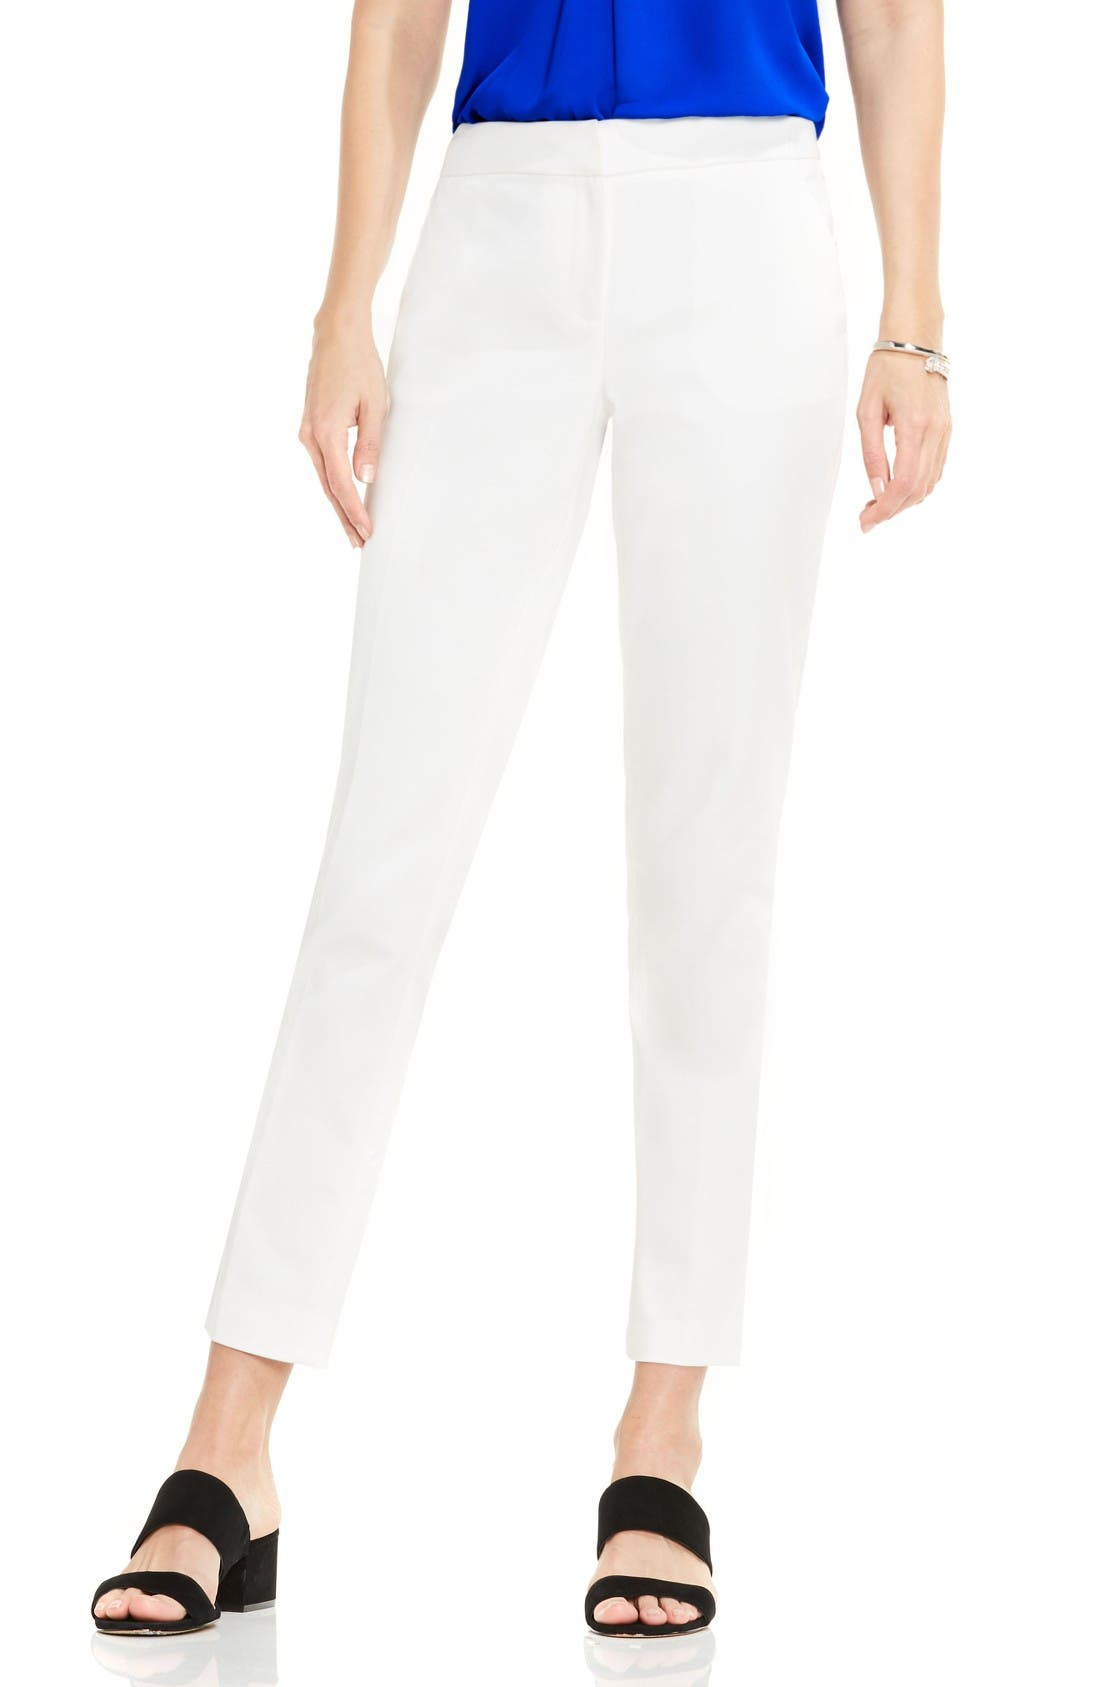 Alternate Image 1 Selected - Vince Camuto Double Weave Cotton Blend Ankle Pants (Regular & Petite)